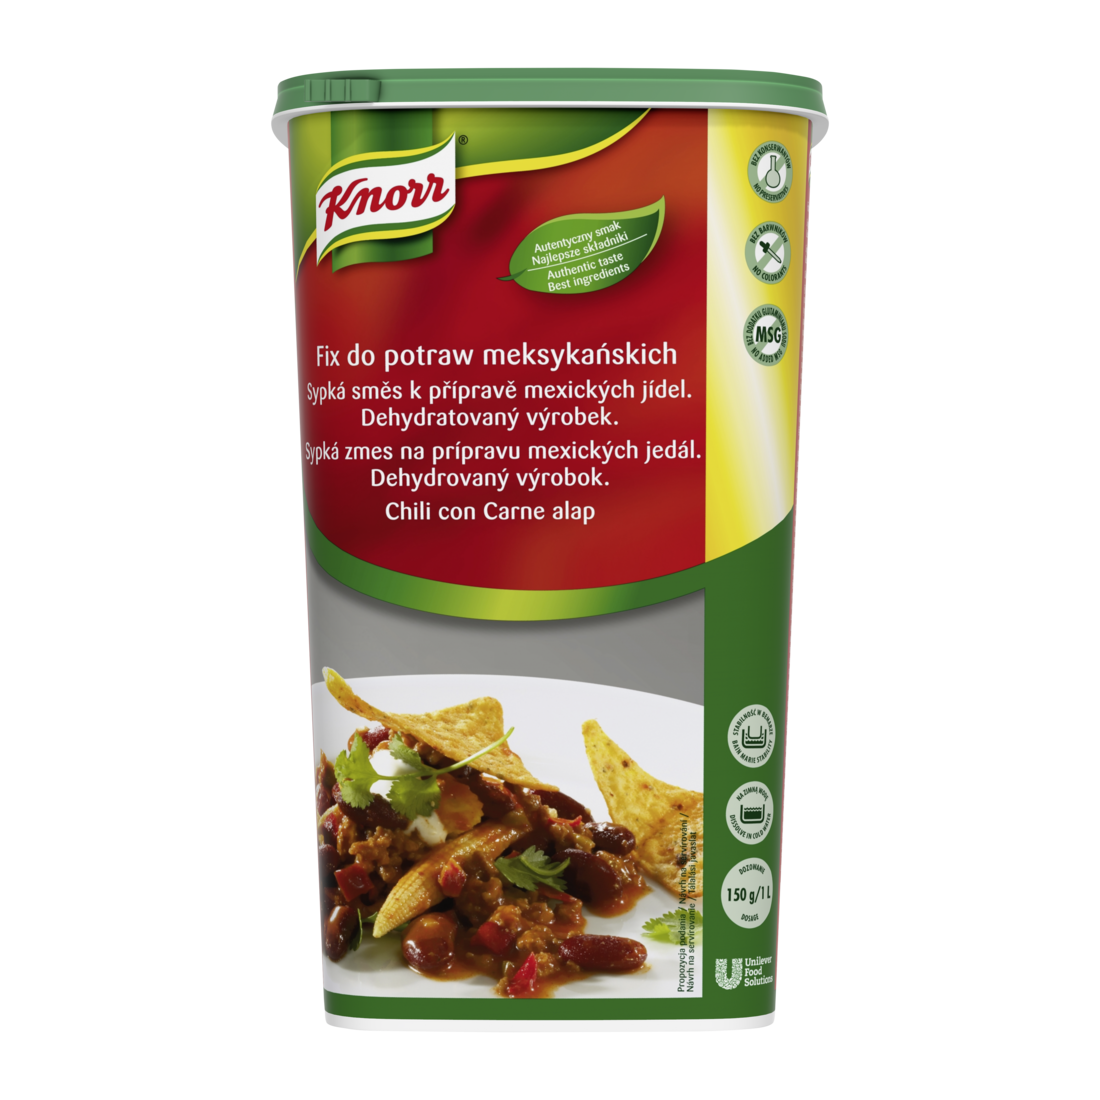 KNORR Chili con Carne alap 1.2 kg -